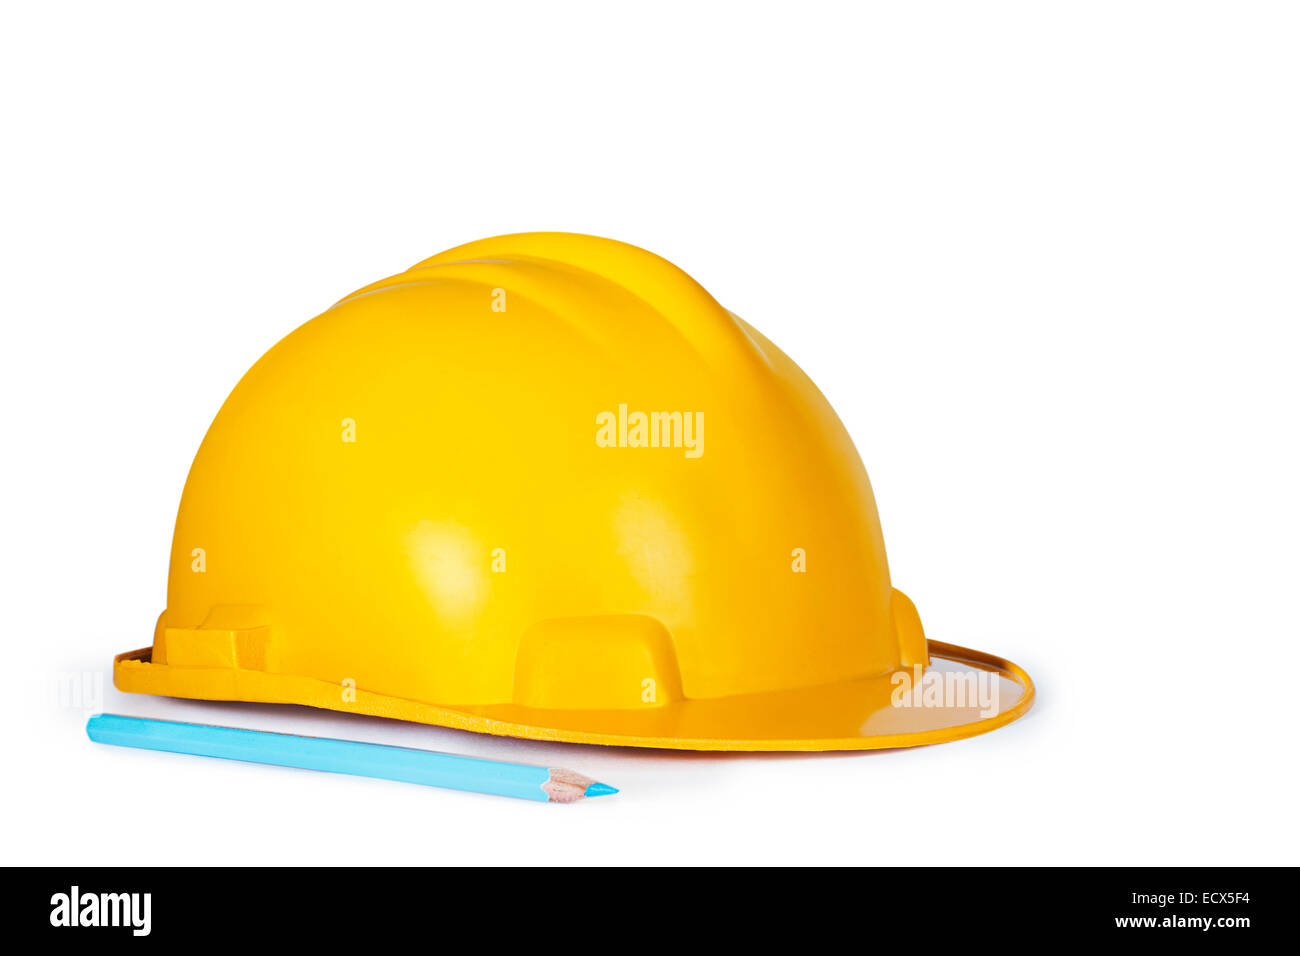 Drawing Pencil and Protective Helmet Nobody - Stock Image